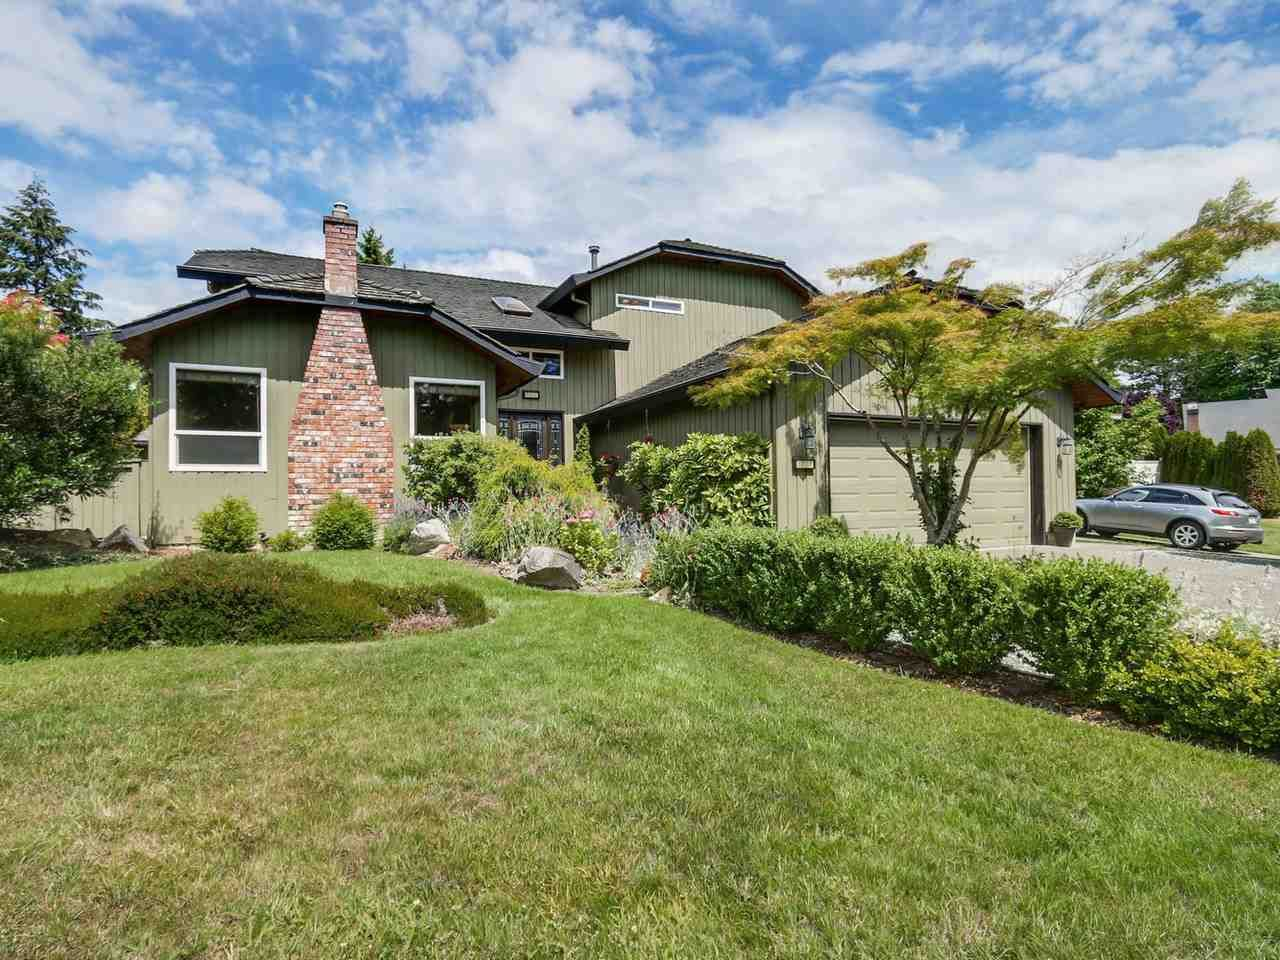 Main Photo: 6824 SANDPIPER Place in Delta: Sunshine Hills Woods House for sale (N. Delta)  : MLS®# R2081391